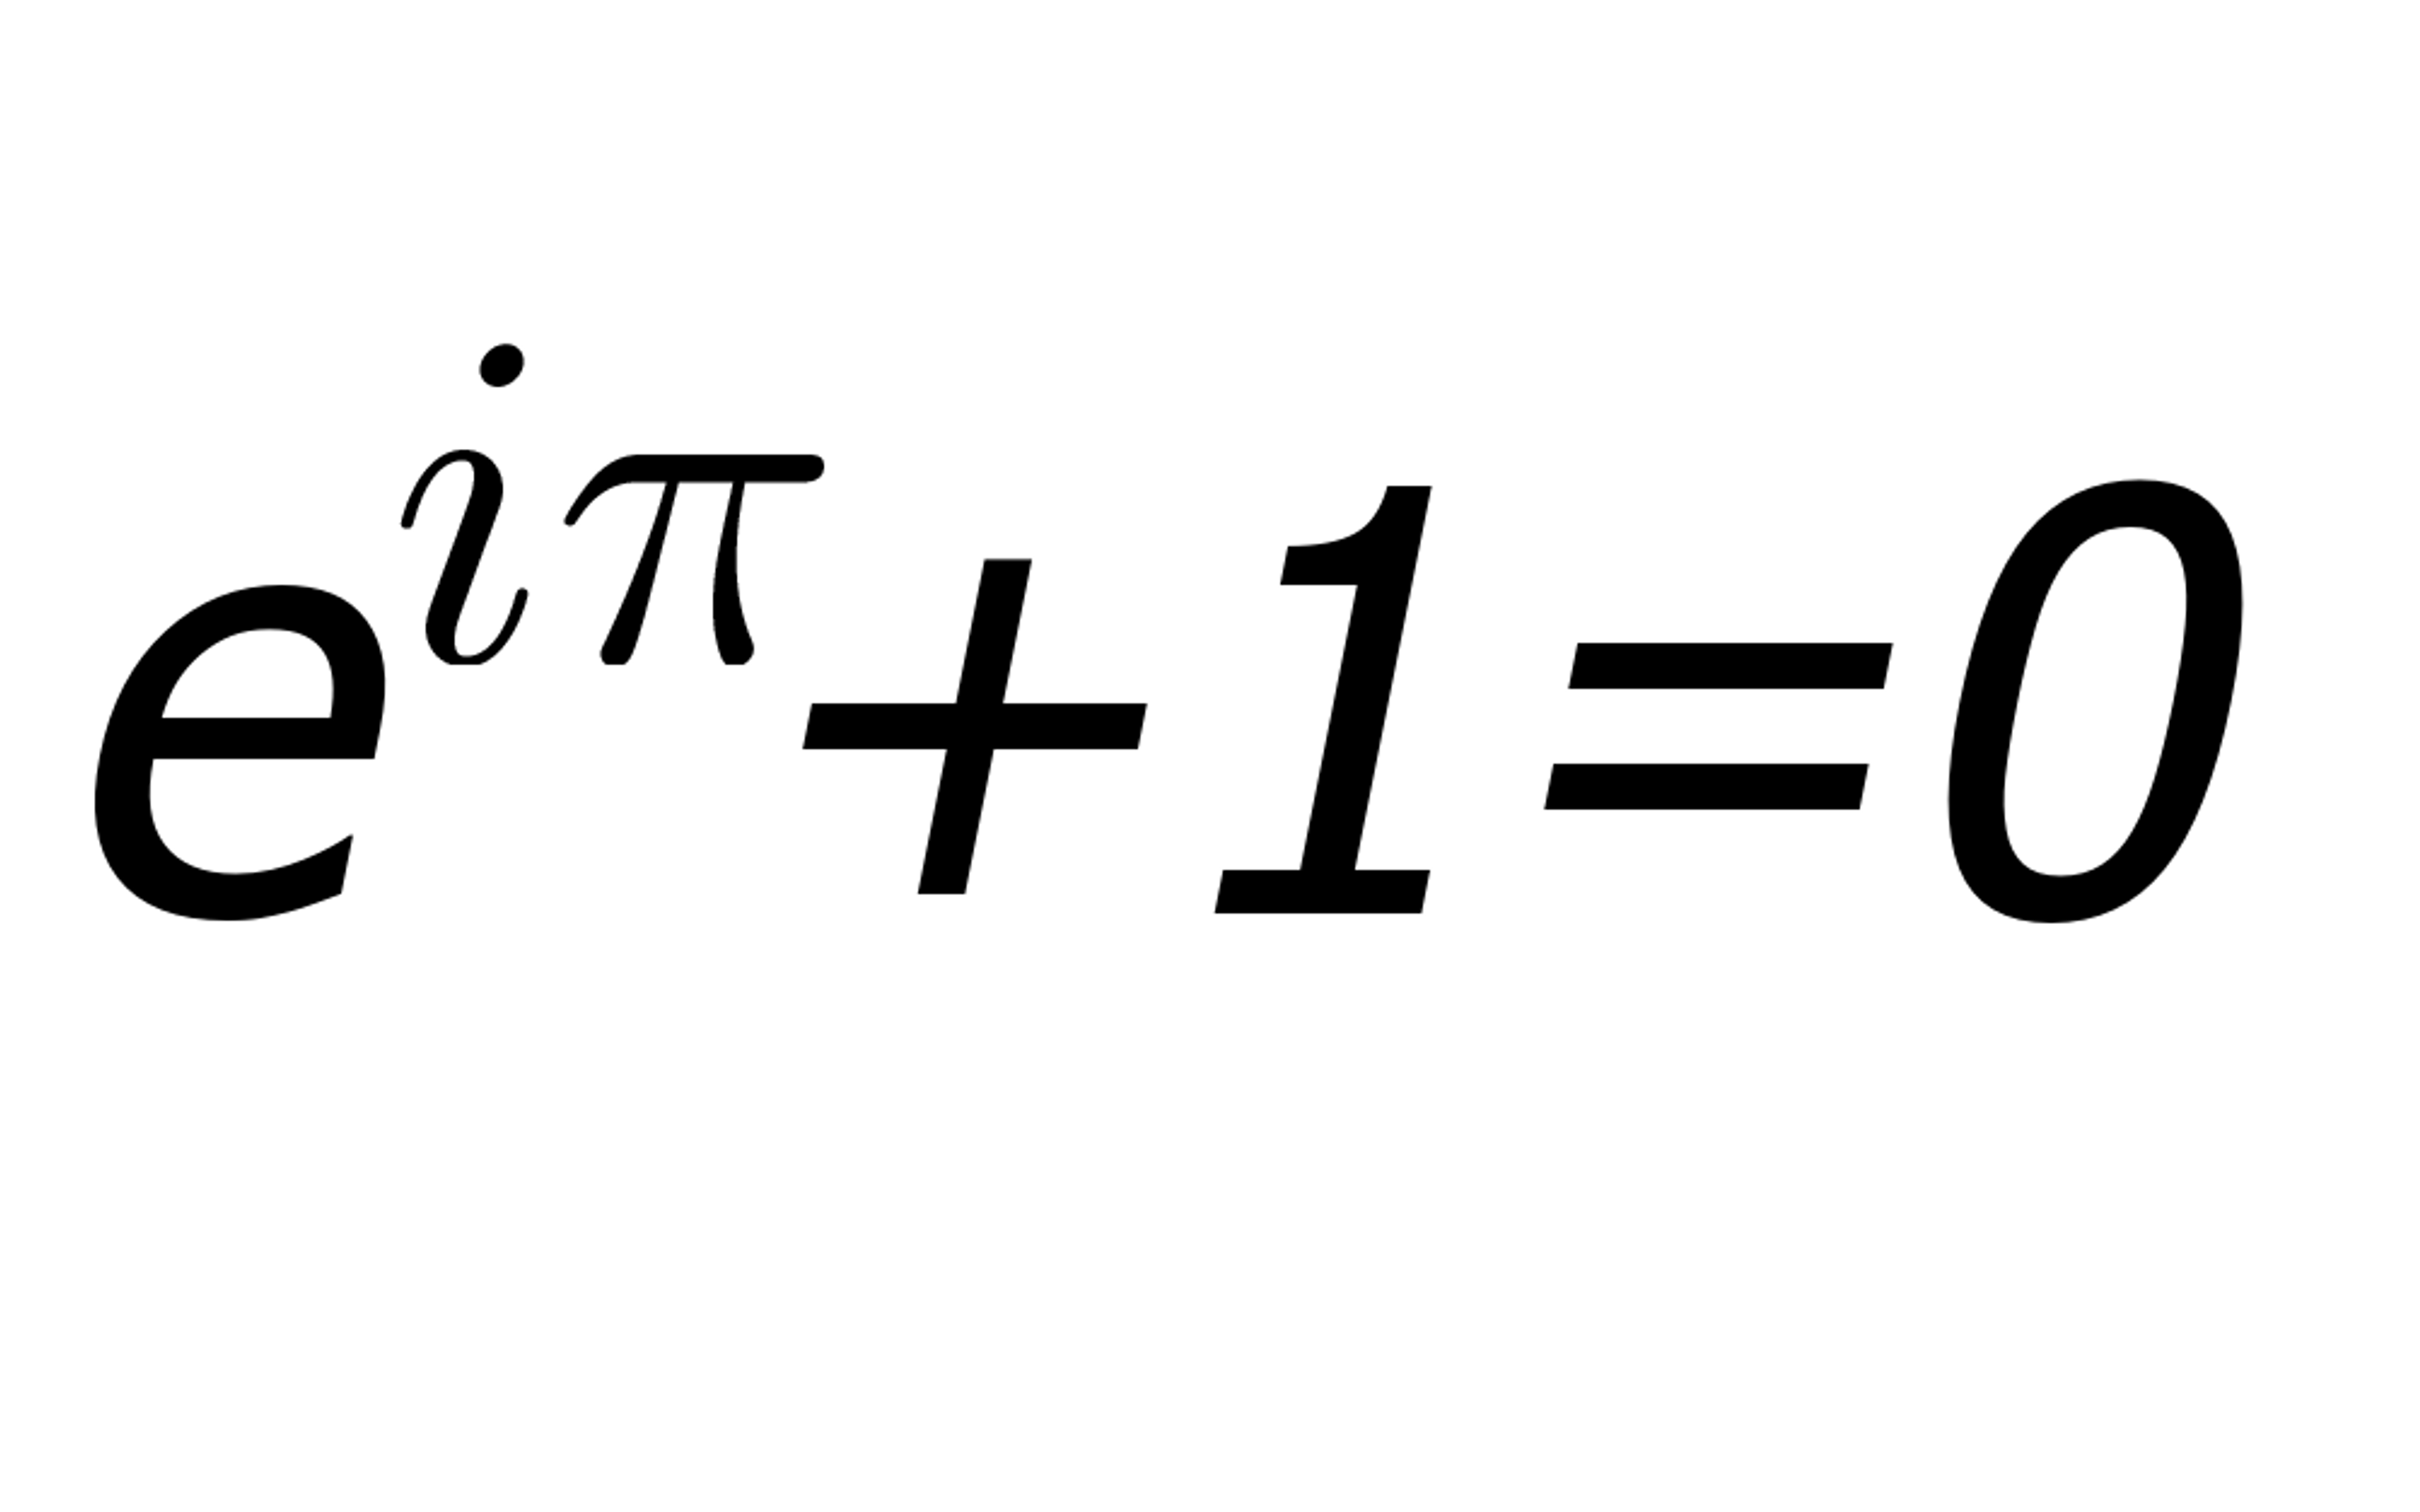 The Most Beautiful Math Equations According To The